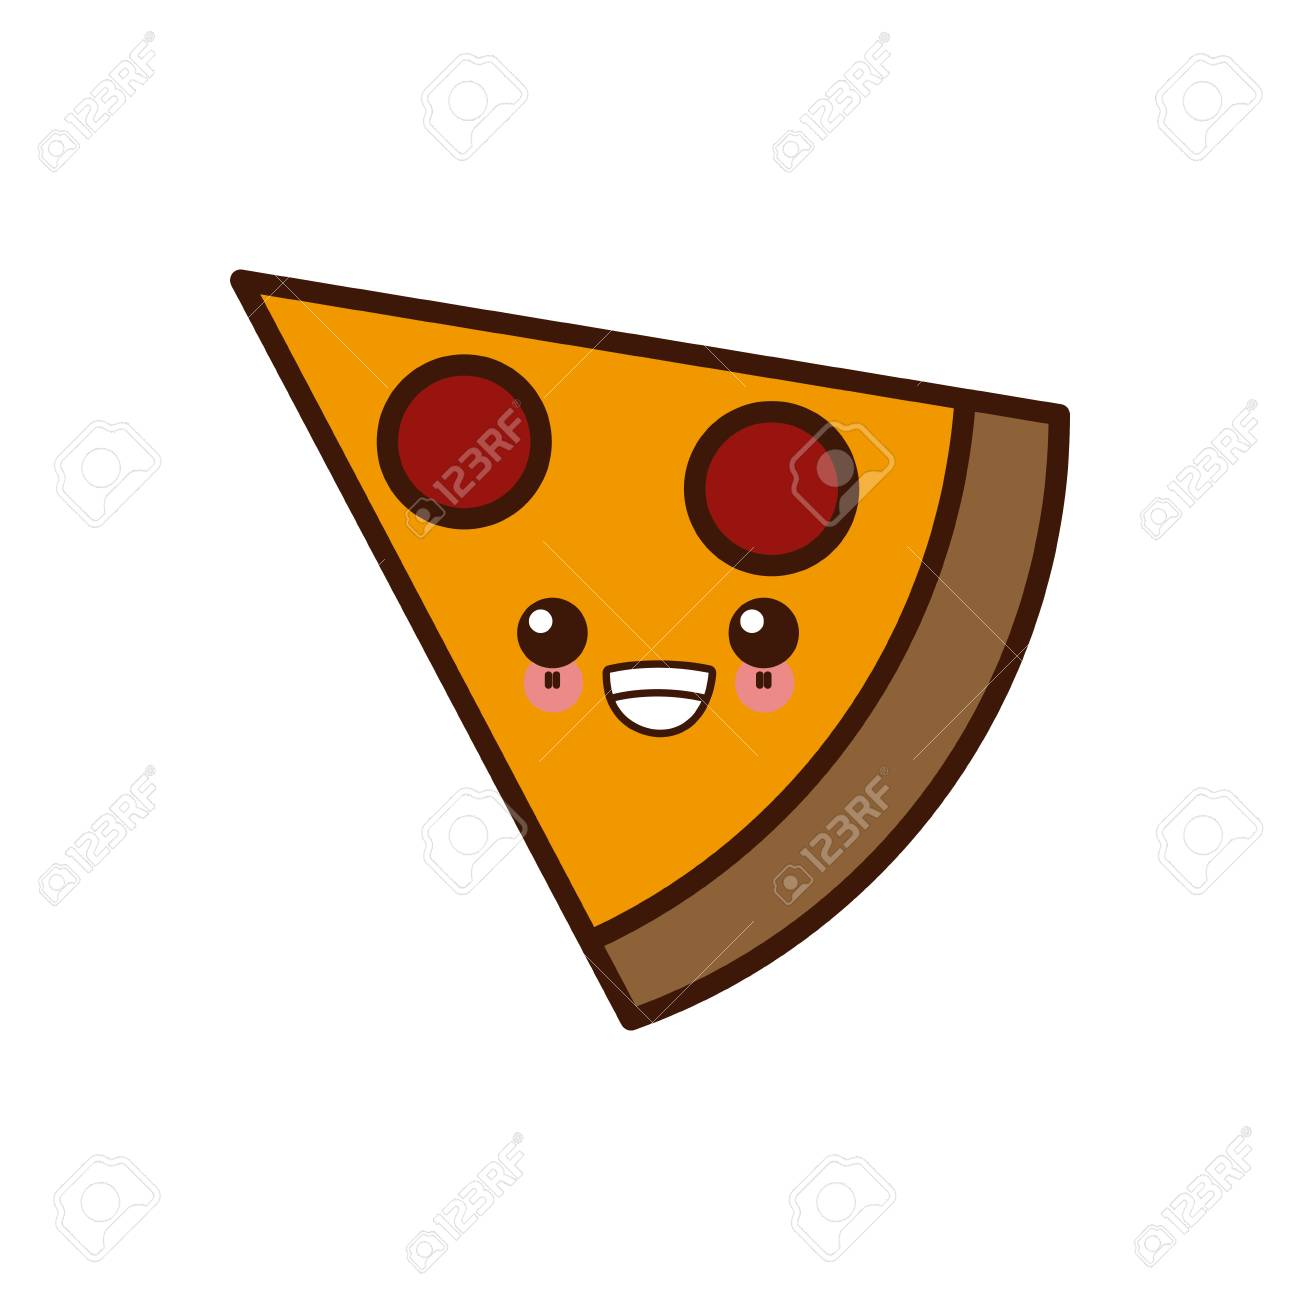 Symbole De La Diapositive Pizza Kawaii Dessin Animé Mignon Vector Illustration Design